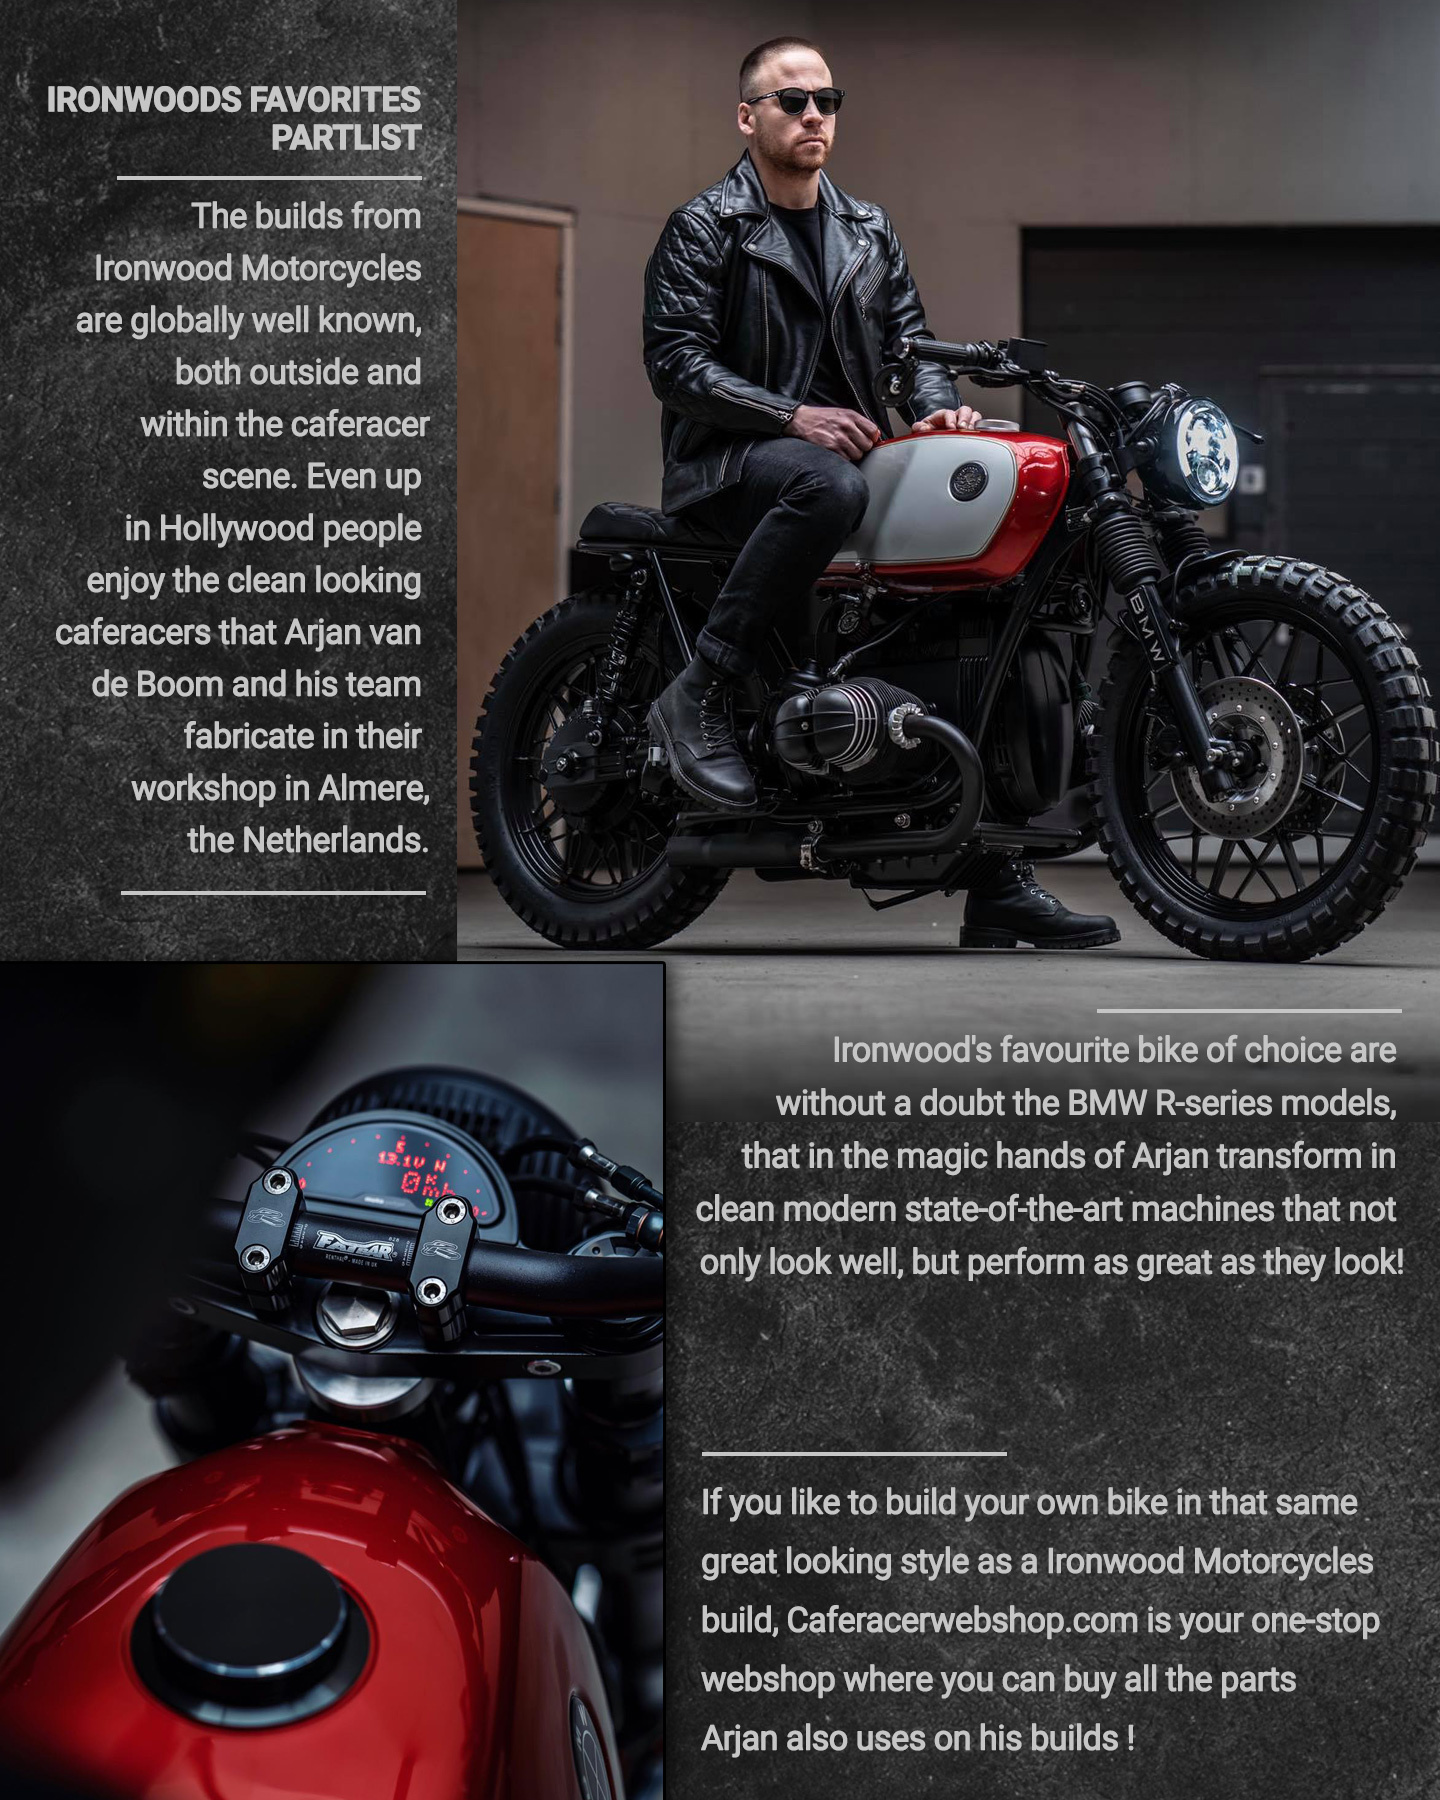 The builds fromIronwood Motorcyclesare globally well known, both outside and within the caferacer scene, even up in Hollywood people enjoy the clean looking caferacers that Arjan van de Boom and his team fabricate in their workshop in Almere. Ironwood'sfavourite bike of choice are without a doubt theBMW R-seriesmodels, that in the magic hands of Arjan transform in clean modern state-of-the-art machines that not only look well, but perform as great as they look! If you like to build your own bike in the same great looking style as aIronwood Motorcycles build, Caferacerwebshop.com is your one-stop webshop where you can buy all the parts Arjan also uses on his builds ;-)